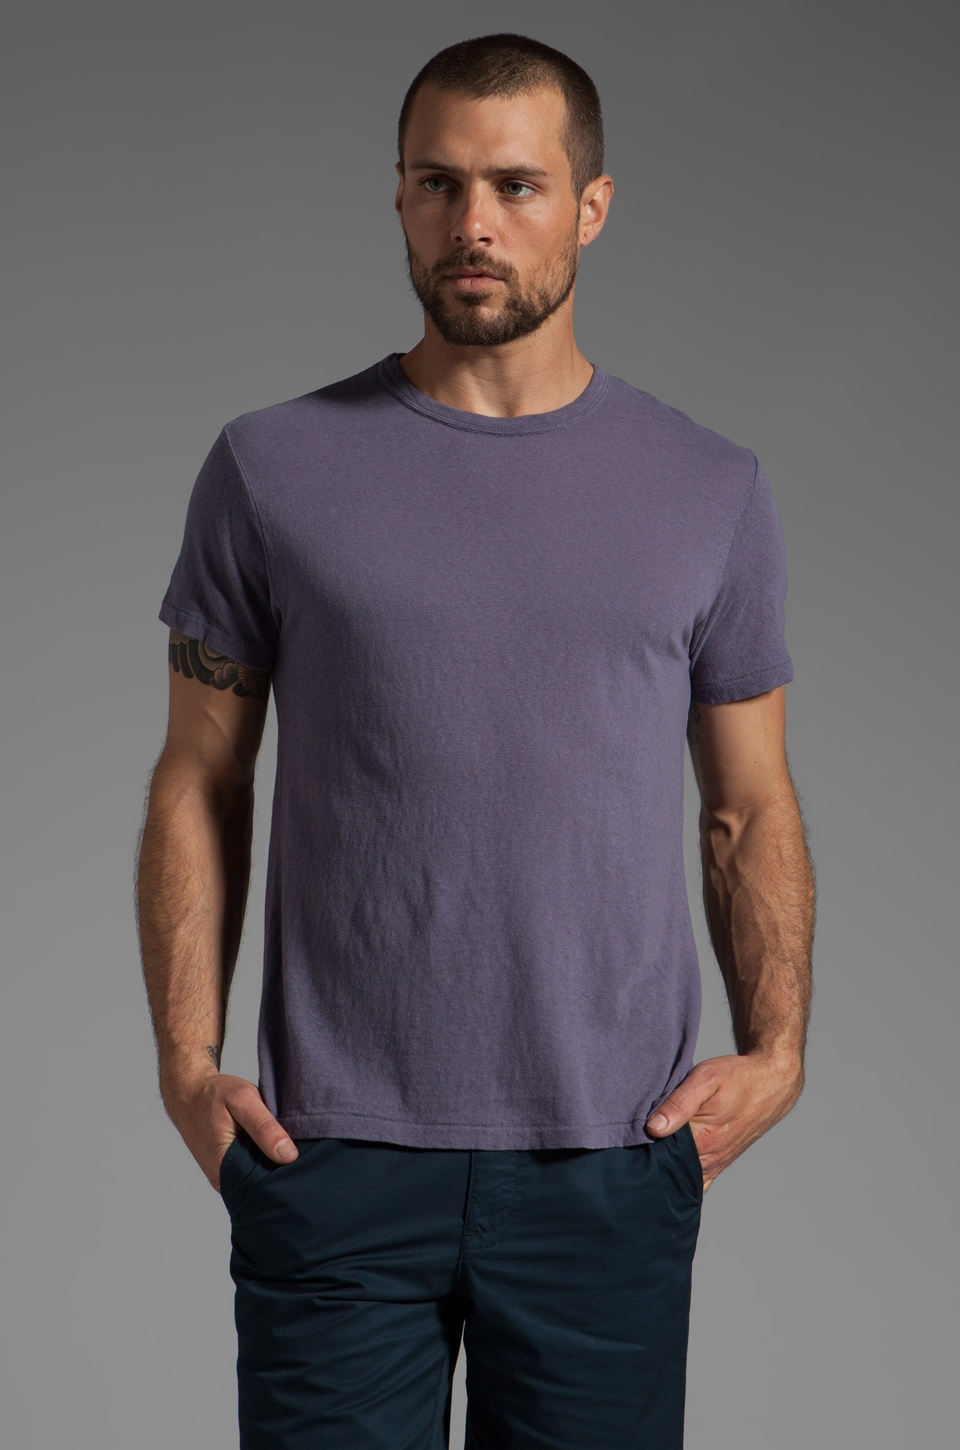 TODD SNYDER Classic T in Blueberry